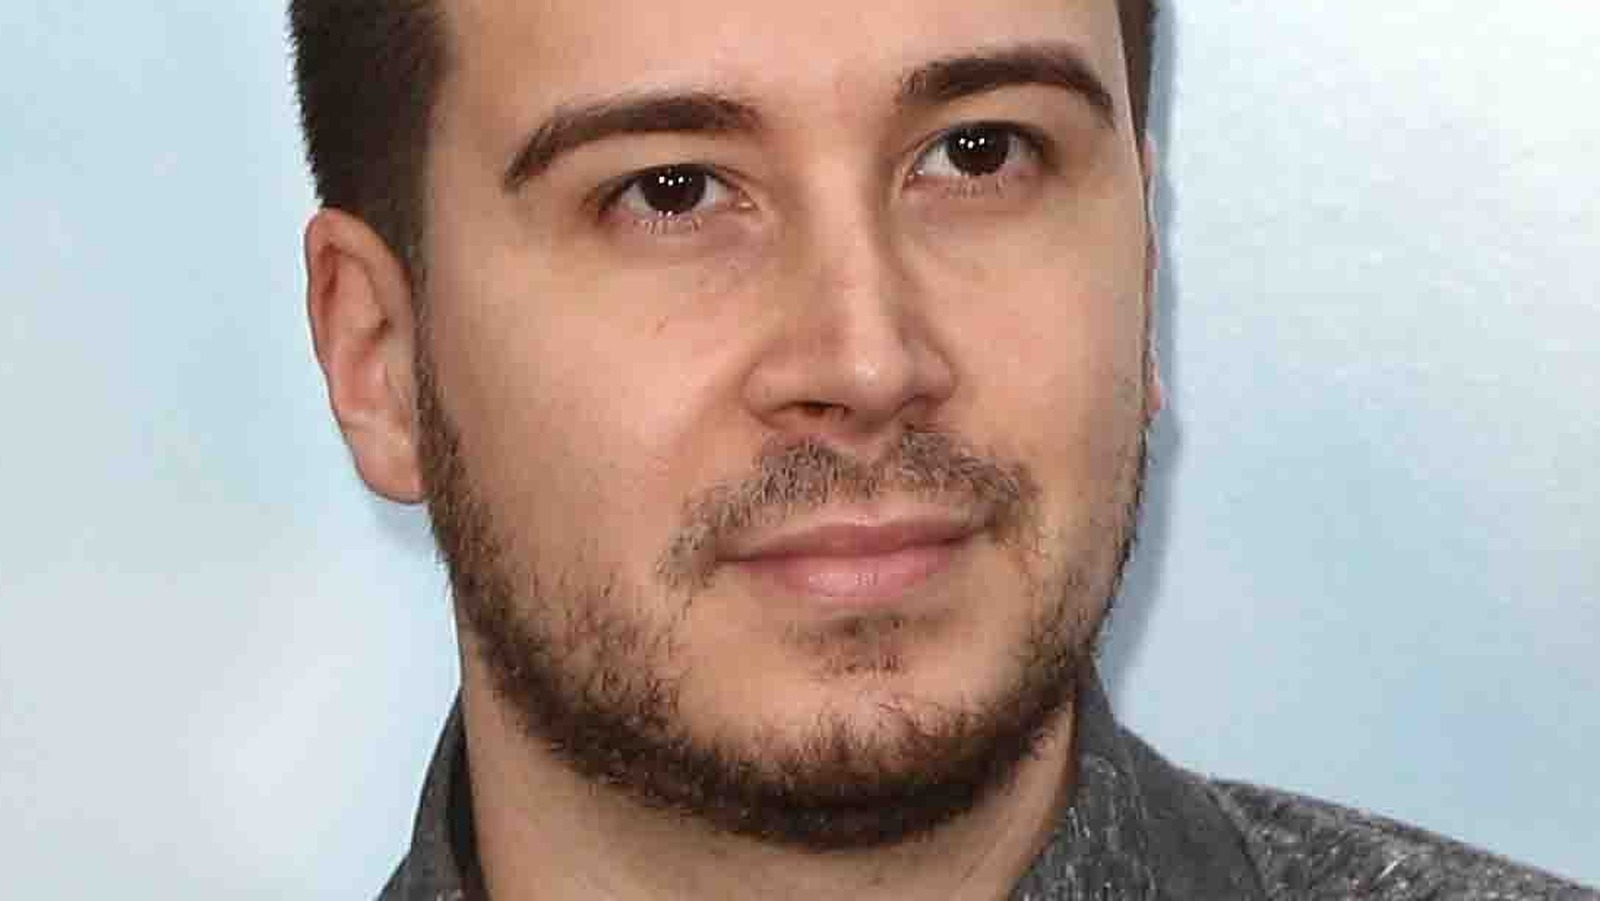 Jersey Shore star Vinny Guadagnino offered $30,000 to